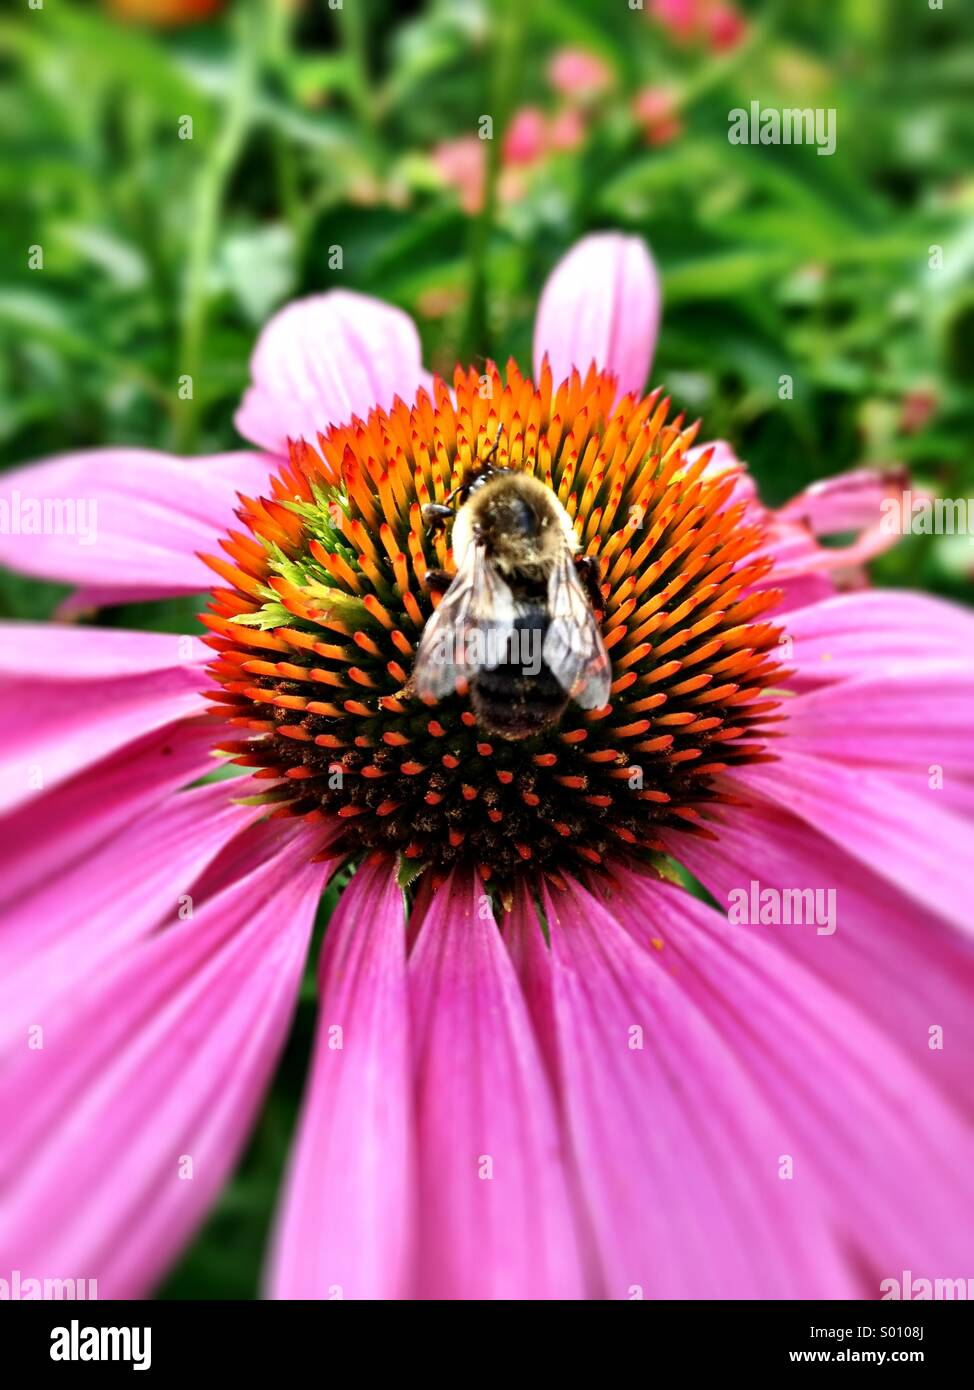 A bee sits on a pink flower. - Stock Image